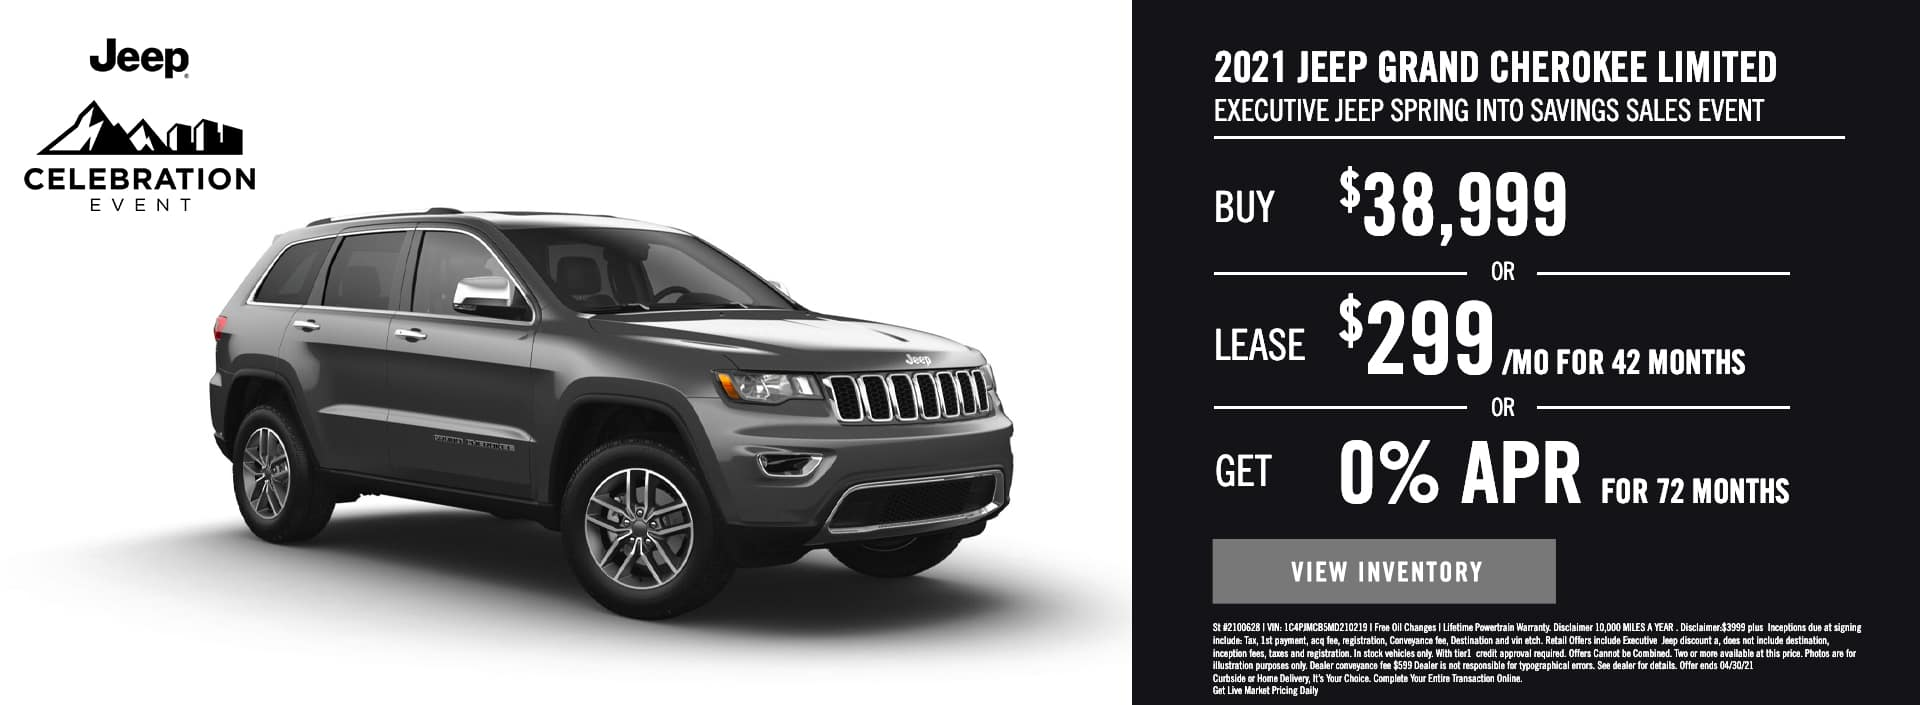 EAG_Jeep_2021 Jeep Grand Cherokee Limited